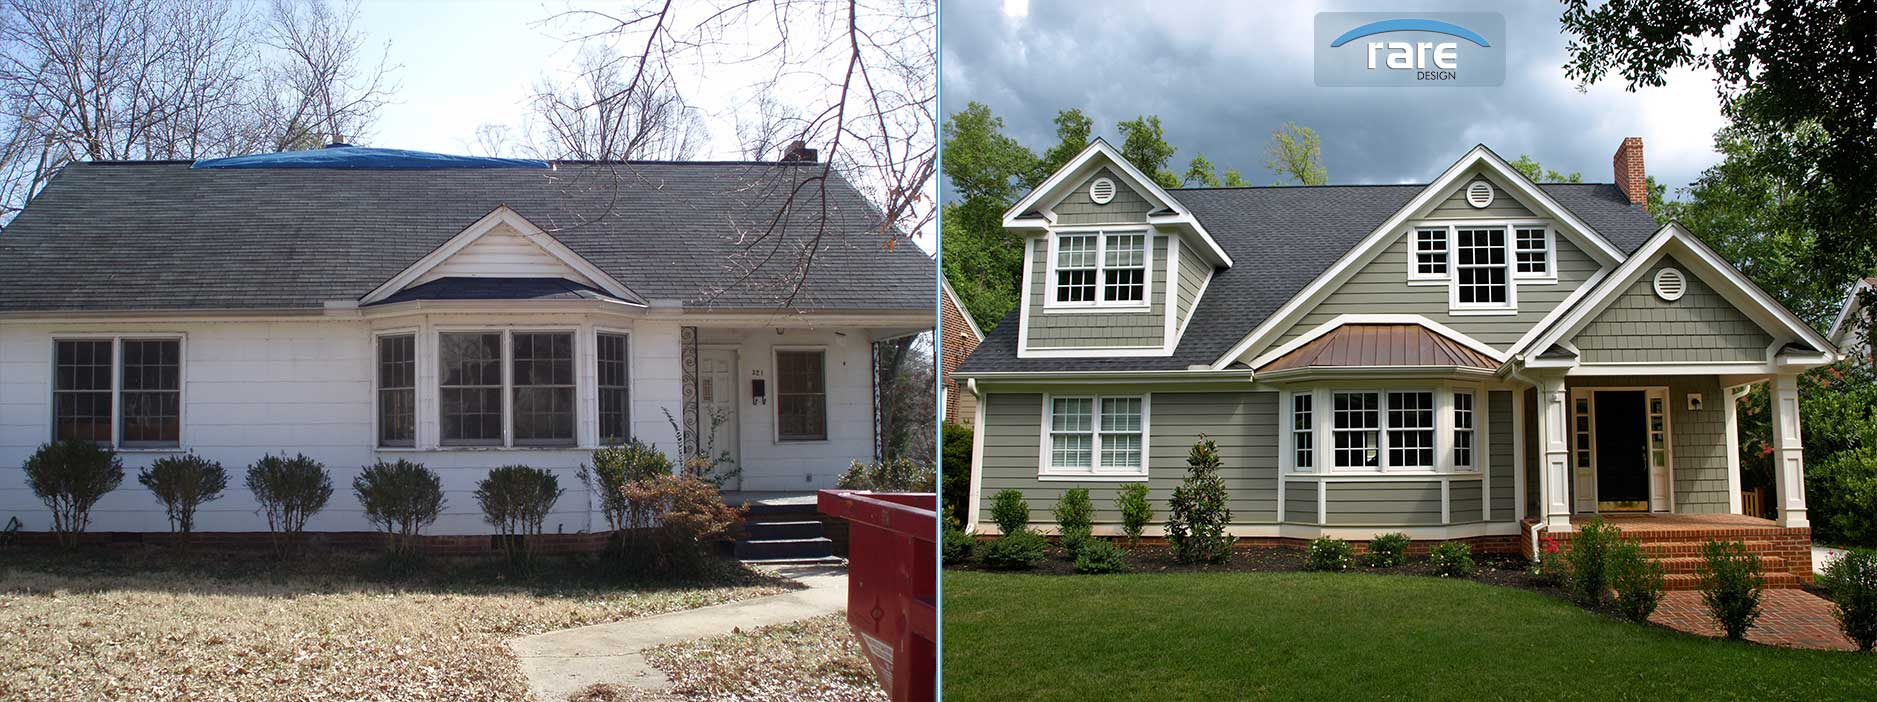 Greenville home remodel rare design before and after for Renovate front of house